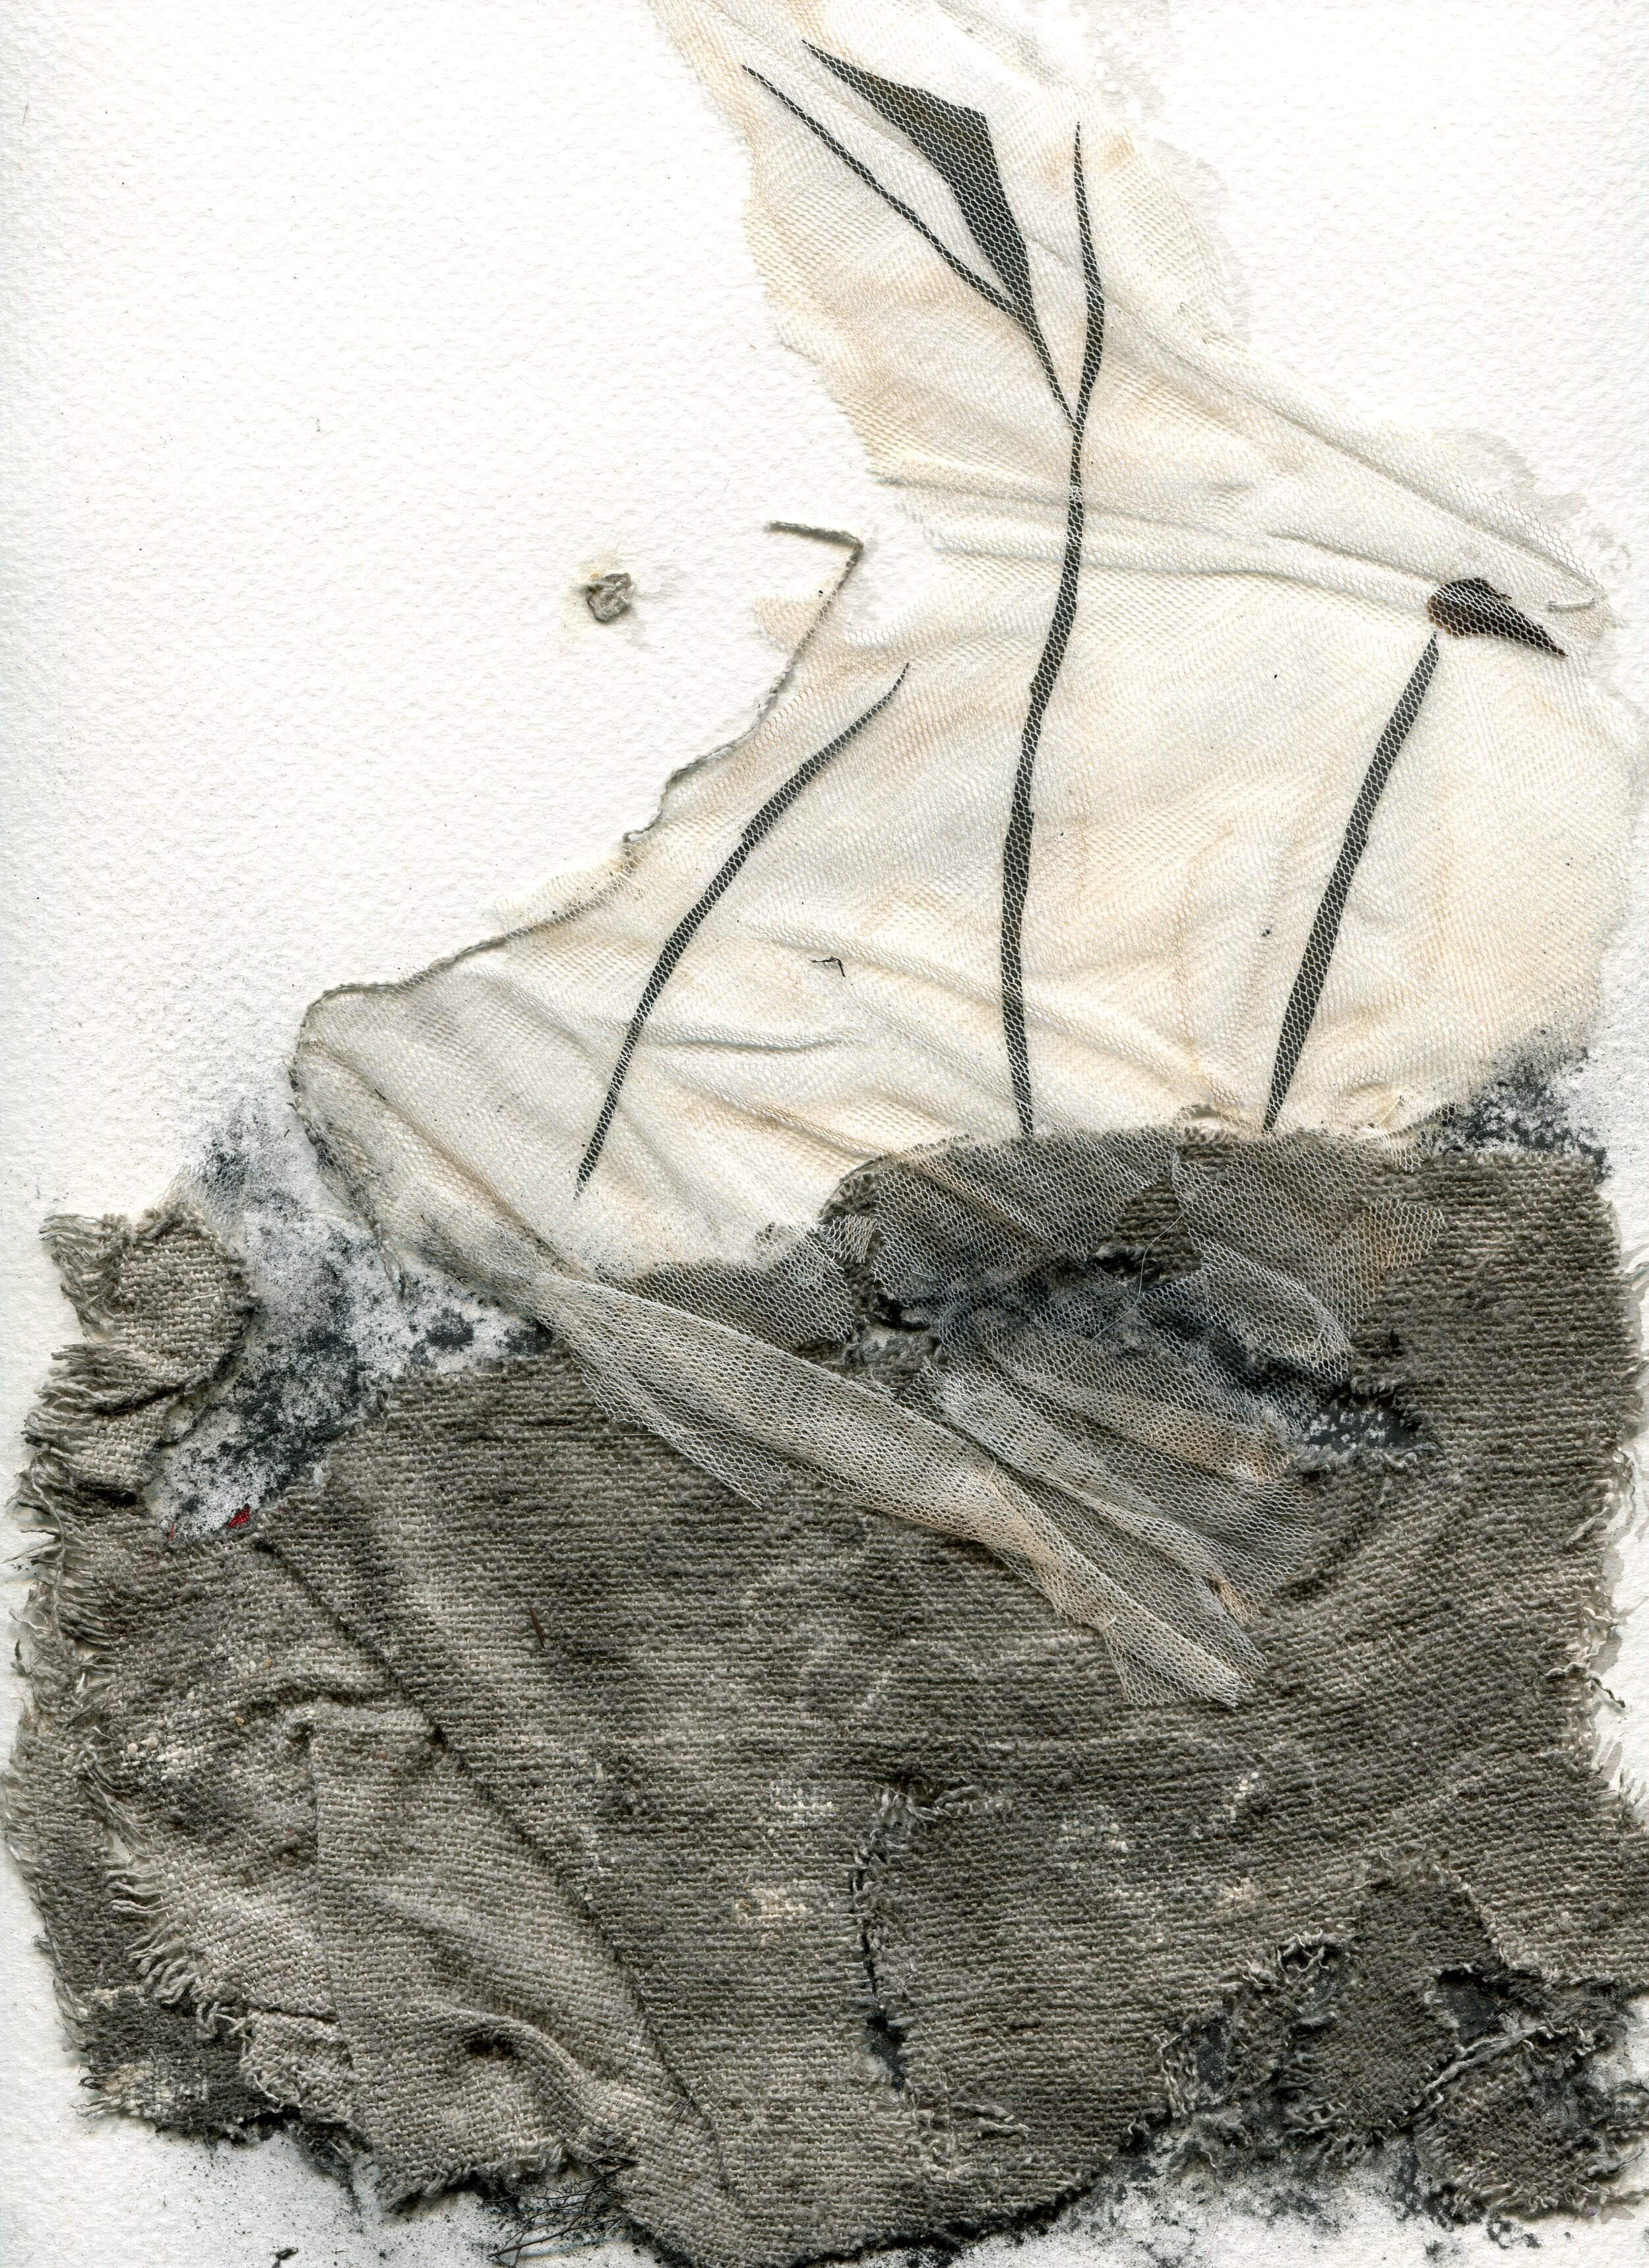 69a  Ingrid Adams  Capture 1, Sumi-e  net and fabric on paper